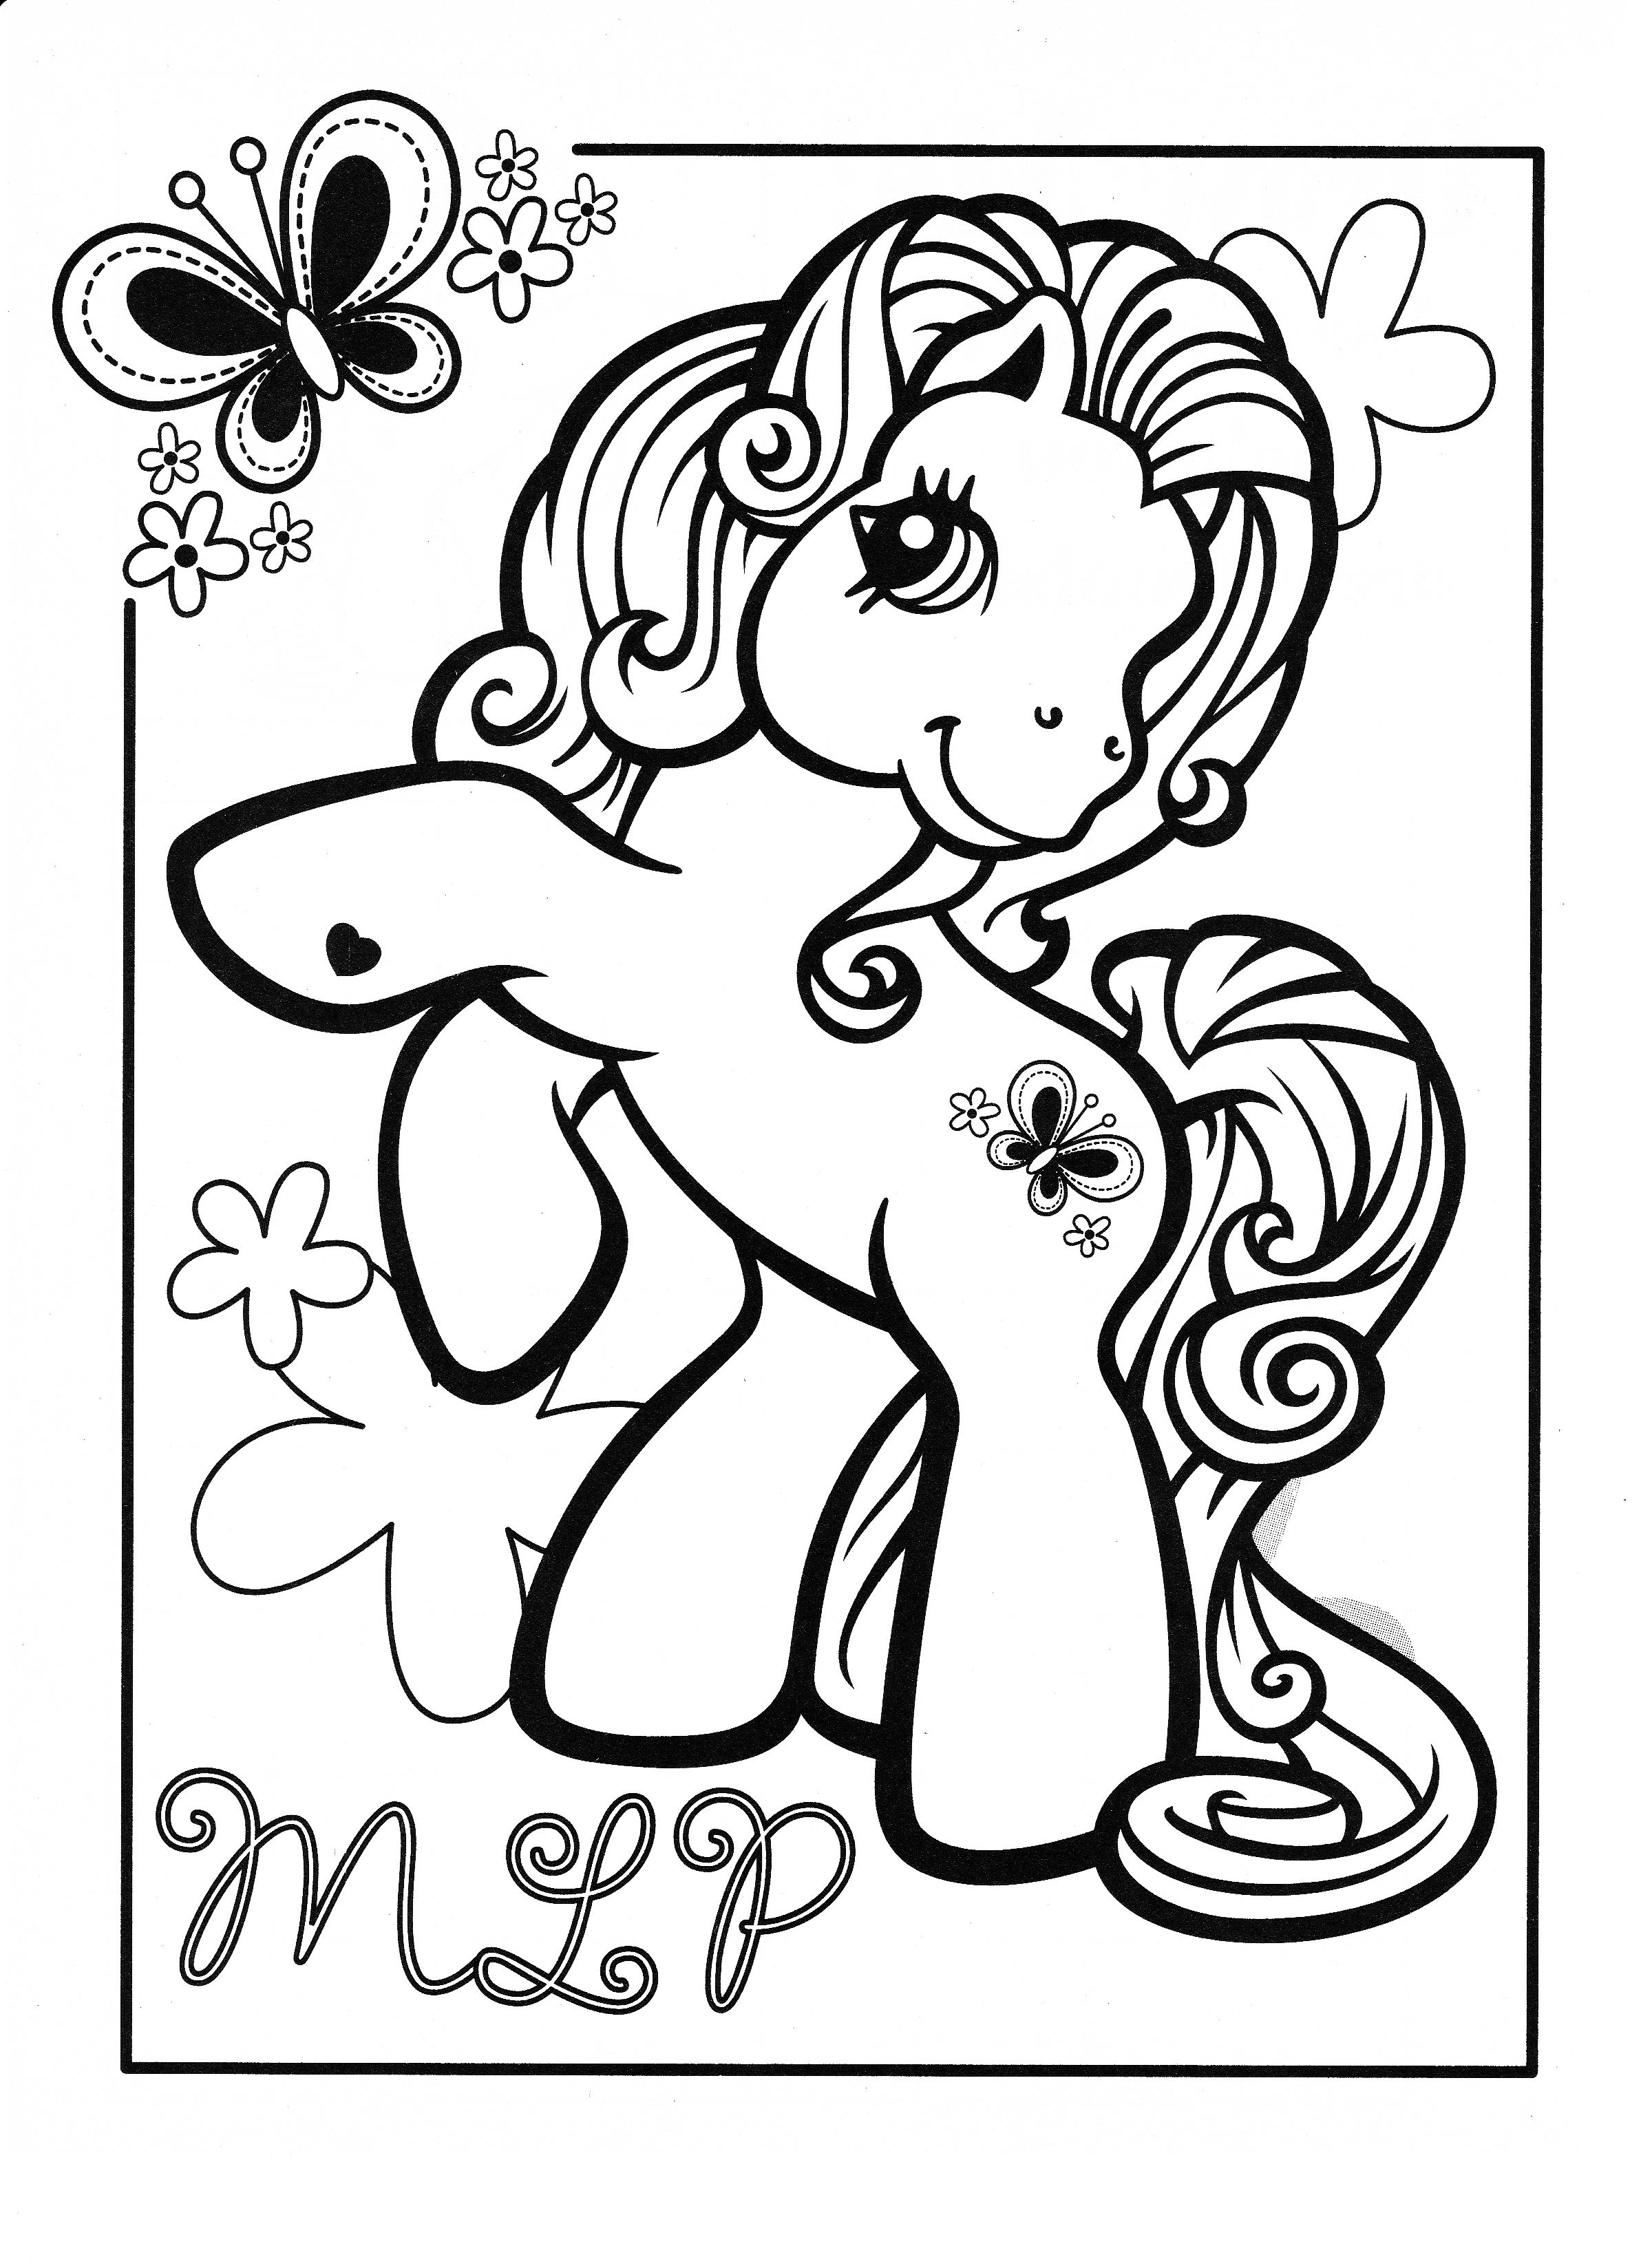 pictures of my little pony to color cute my little pony coloring pages 101 activity of color my pictures little pony to